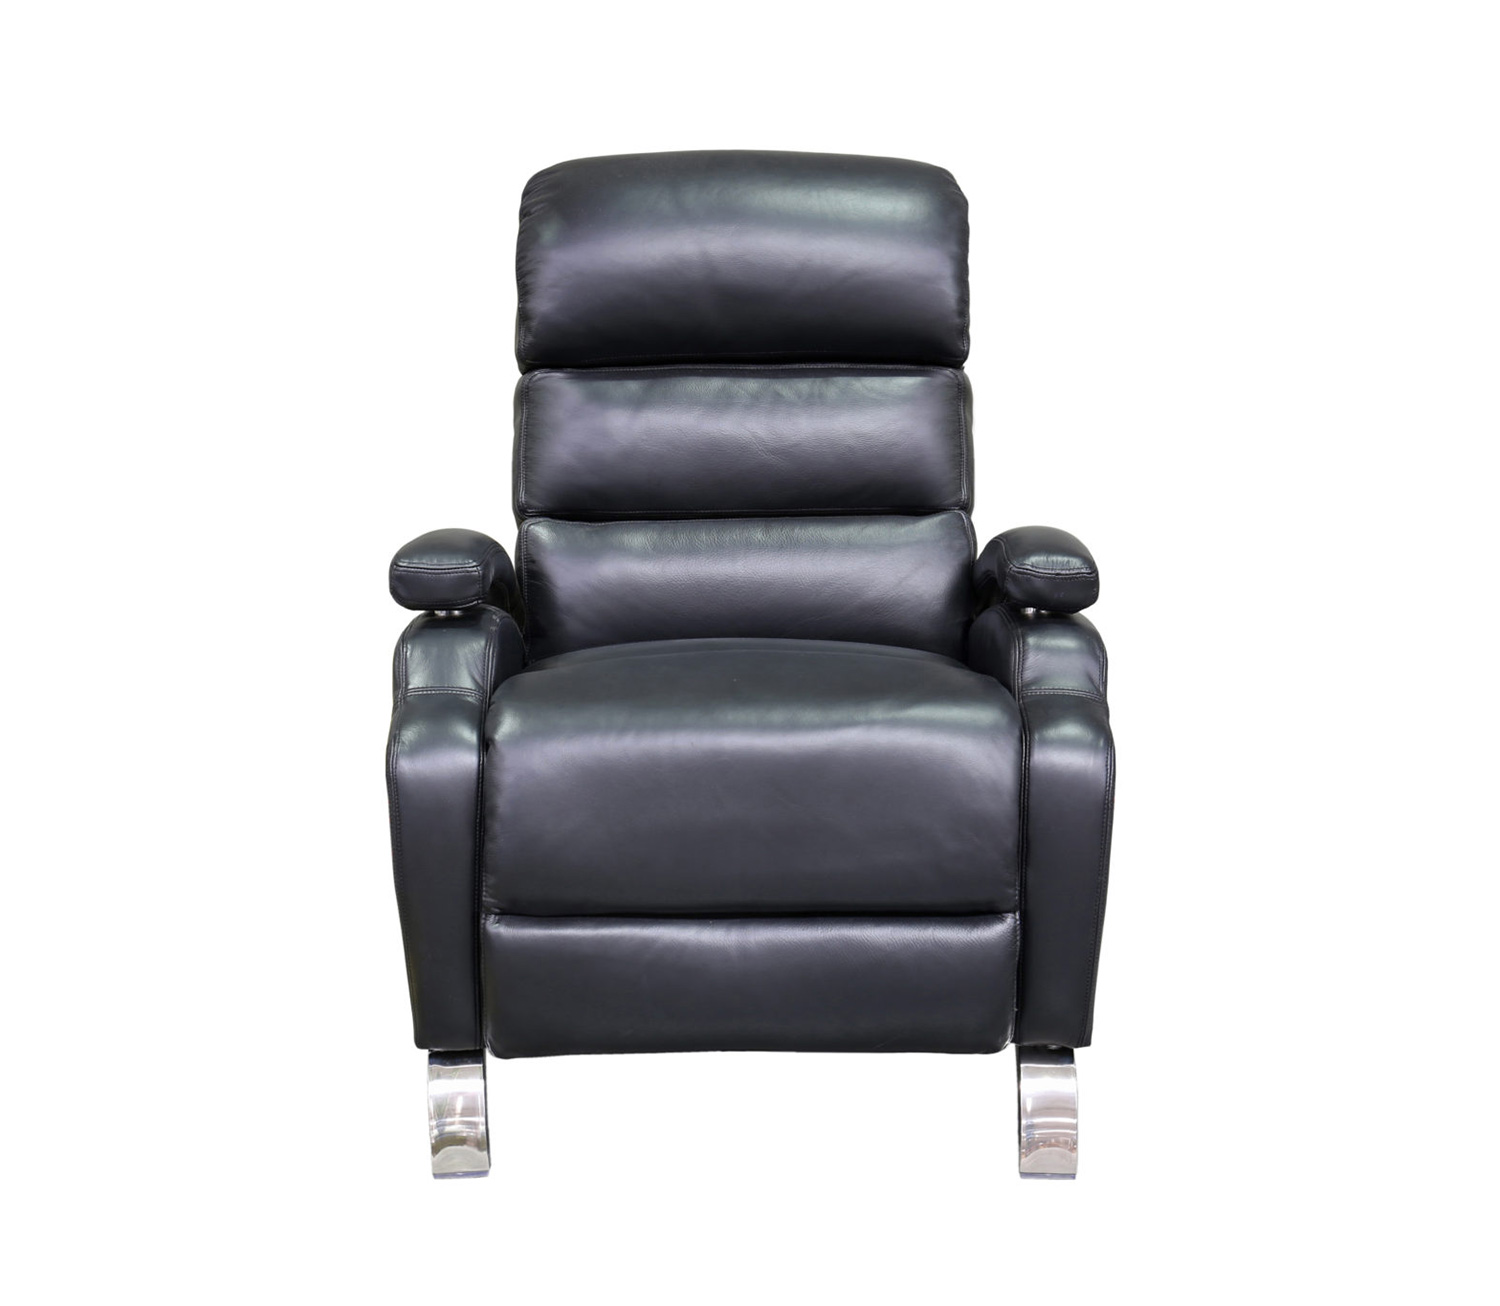 Barcalounger Giovanni Recliner Chair - Wenlock Onyx/all leather